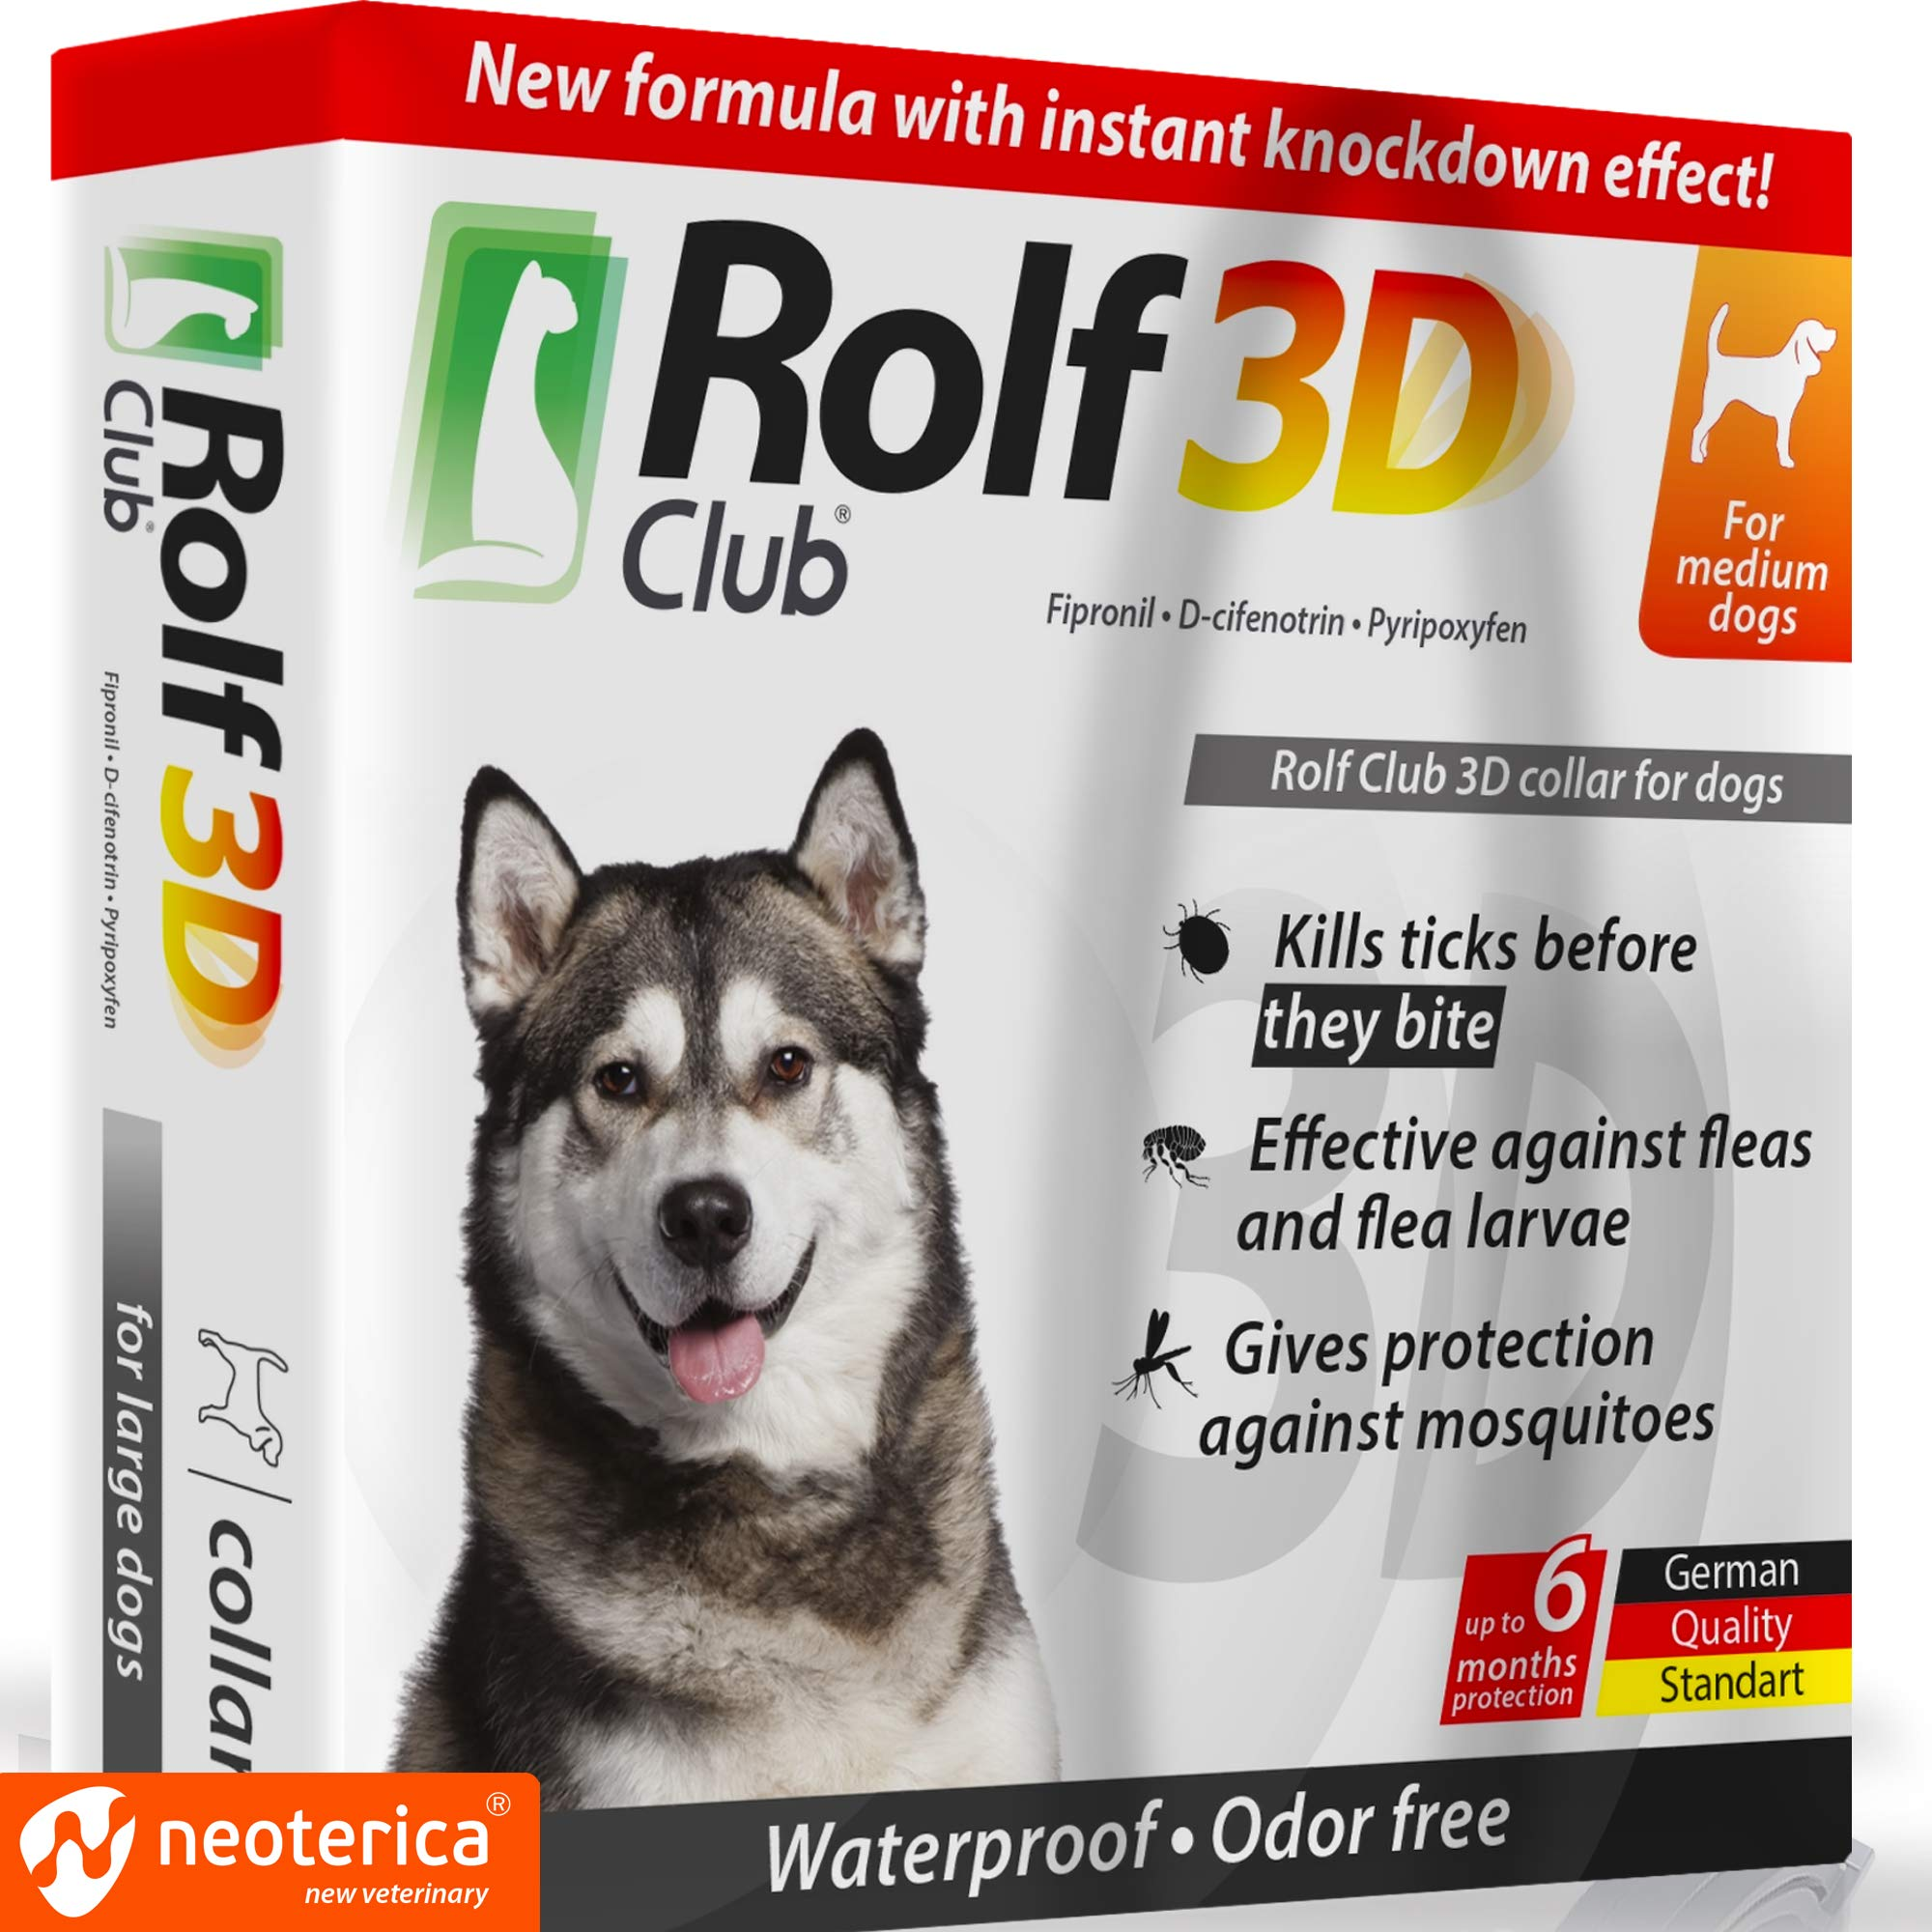 Rolf Club 3D FLEA Collar for Dogs - Flea and Tick Prevention for Dogs - Dog Flea and Tick Control for 6 Months - Safe Tick Repellent - Waterproof Tick Treatment ... (65LB) by Rolf Club 3D